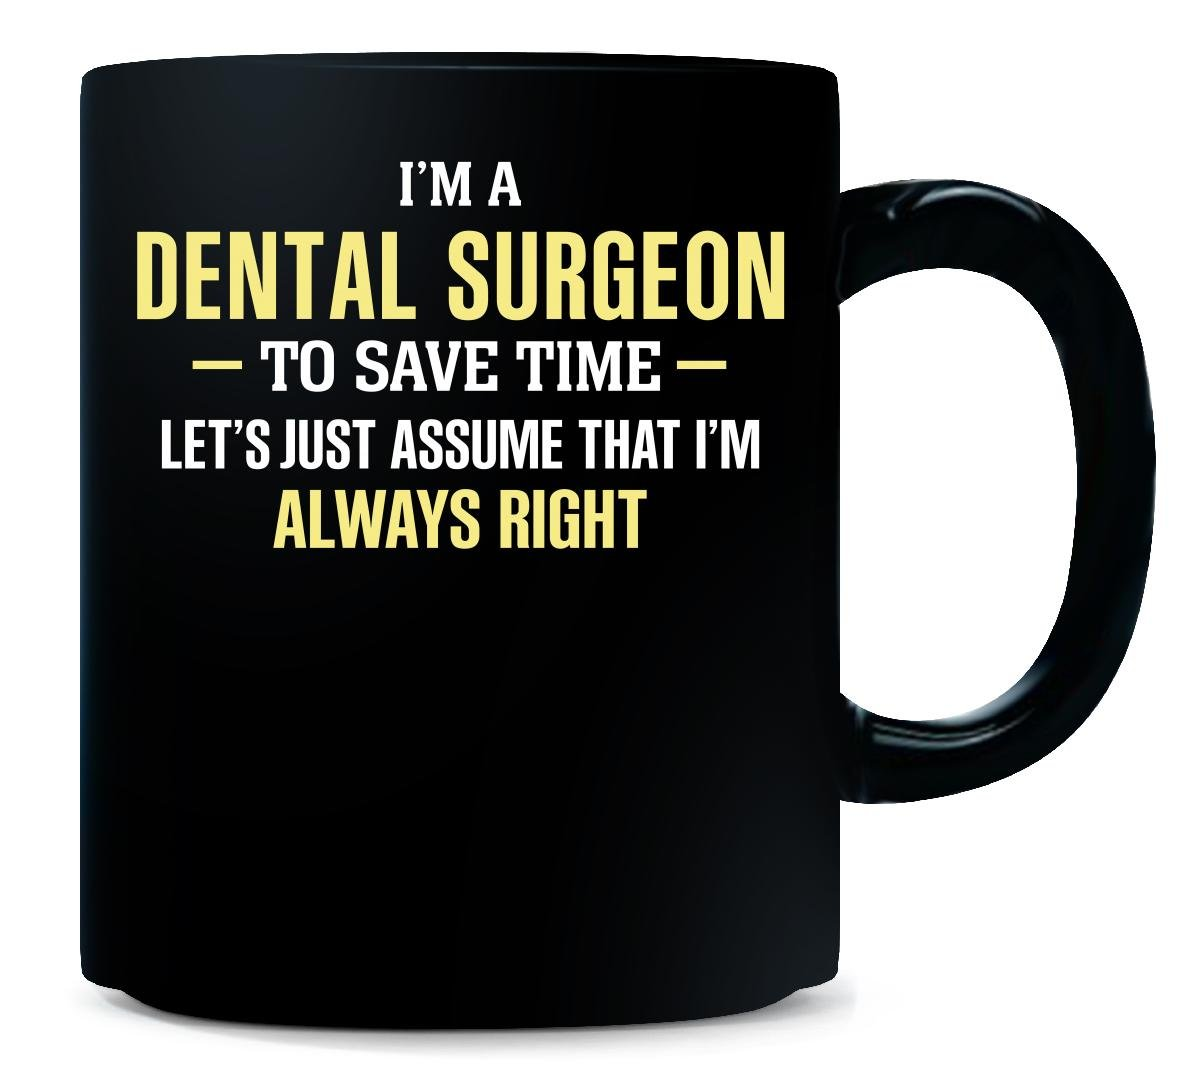 Dental Surgeon To Save Time I'm Always Right - Mug